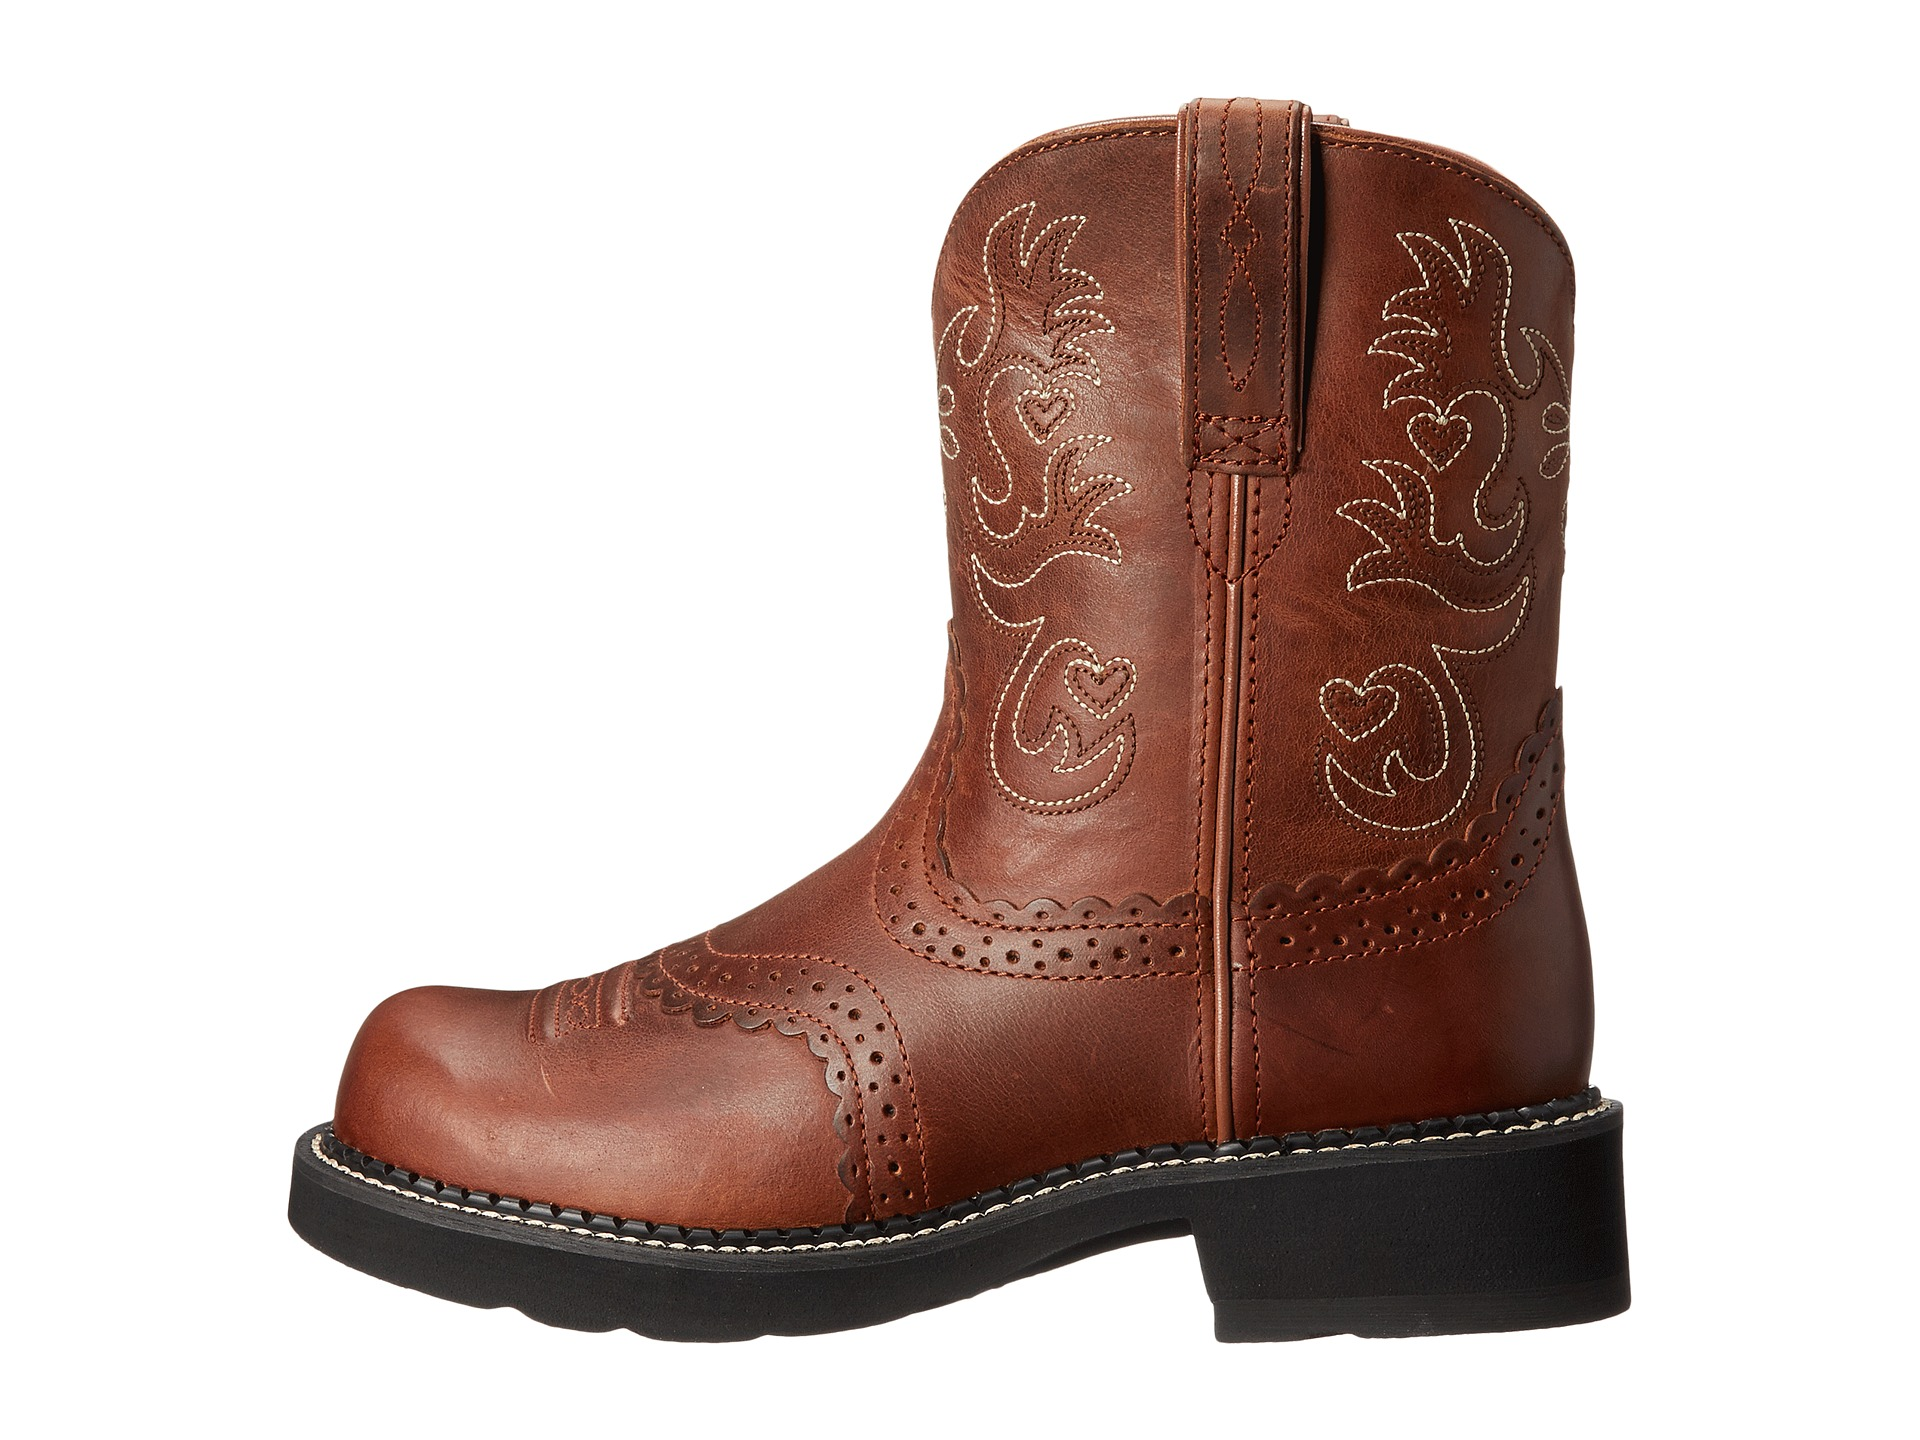 9ca4f102790 Ariat Boots Fatbaby | Coltford Boots